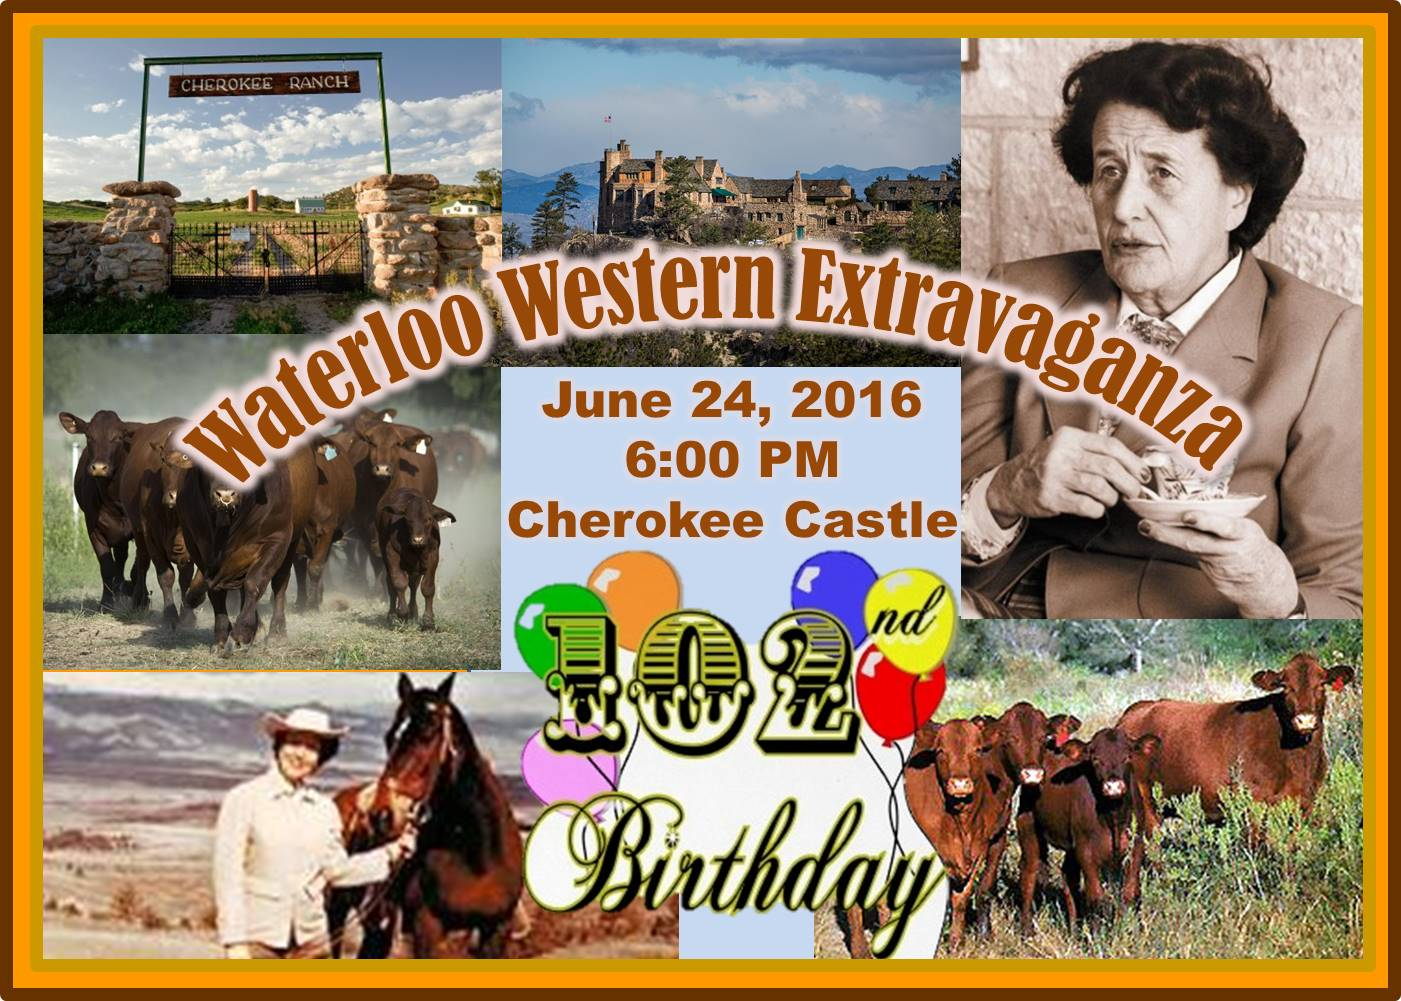 Waterloo Western Extravaganza (Tweet Kimbel's 102nd Birthday Celebration at the Cherokee Castle-2016)